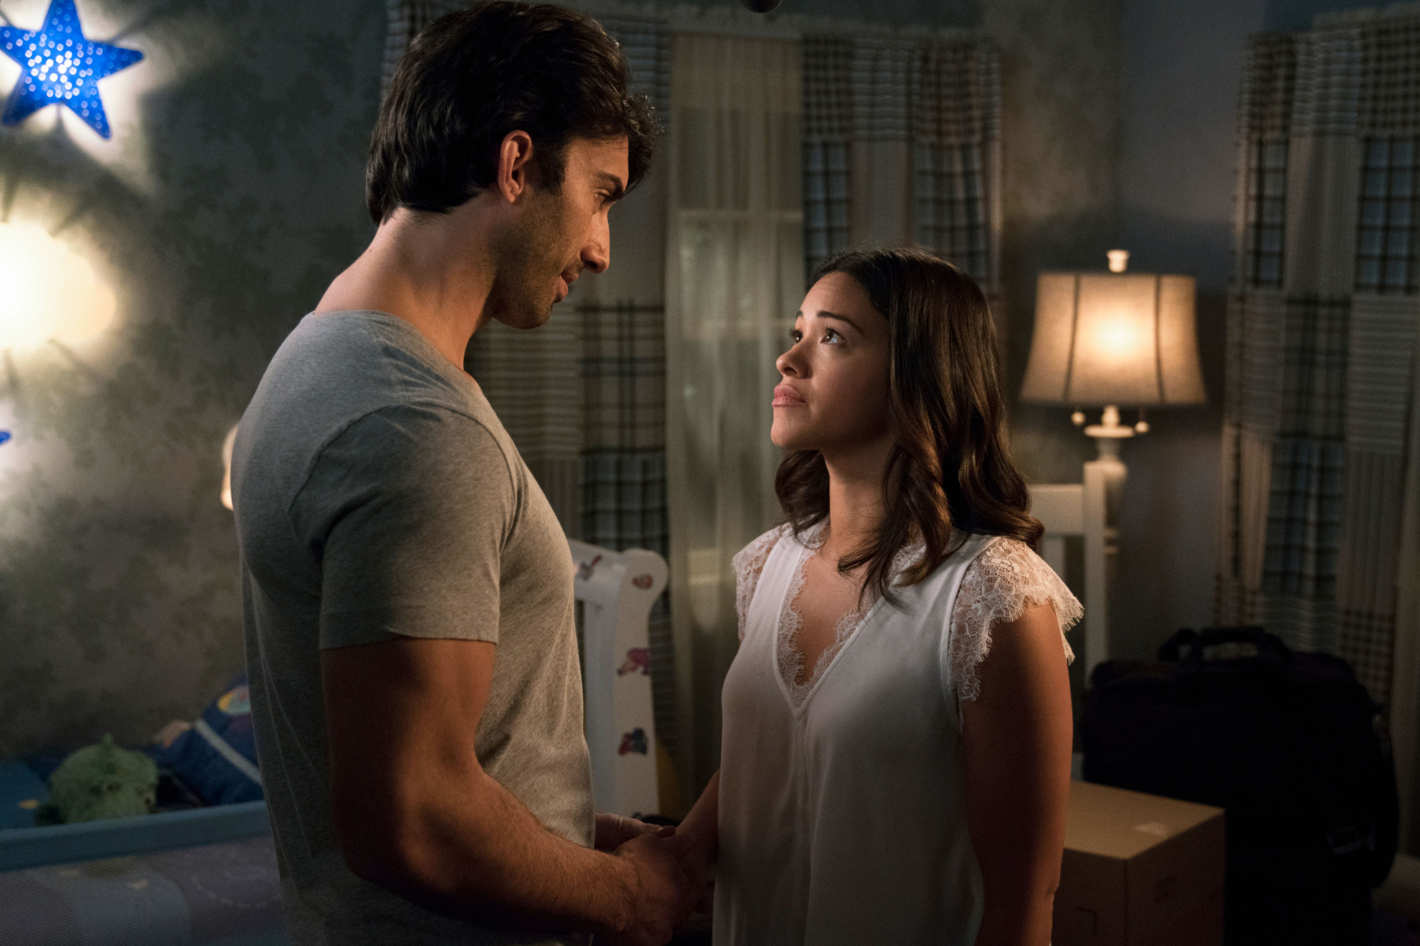 'Jane the Virgin' Fans Lose Their Mind on Twitter After Shocking Season Finale